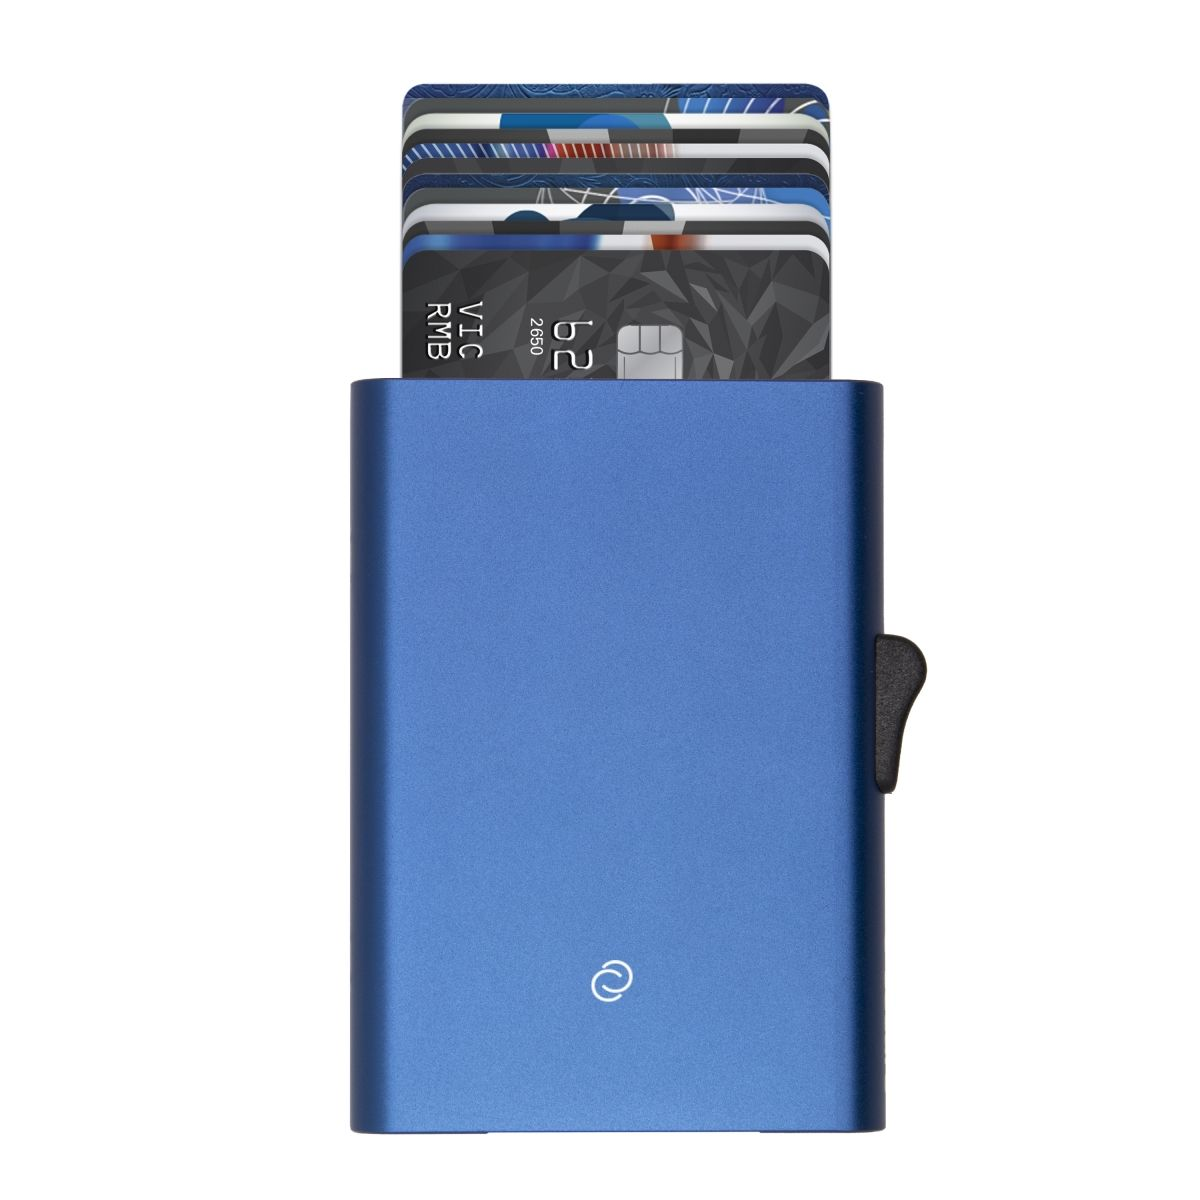 C-Secure Slim RFID XL Aluminum Card Holder - Blue